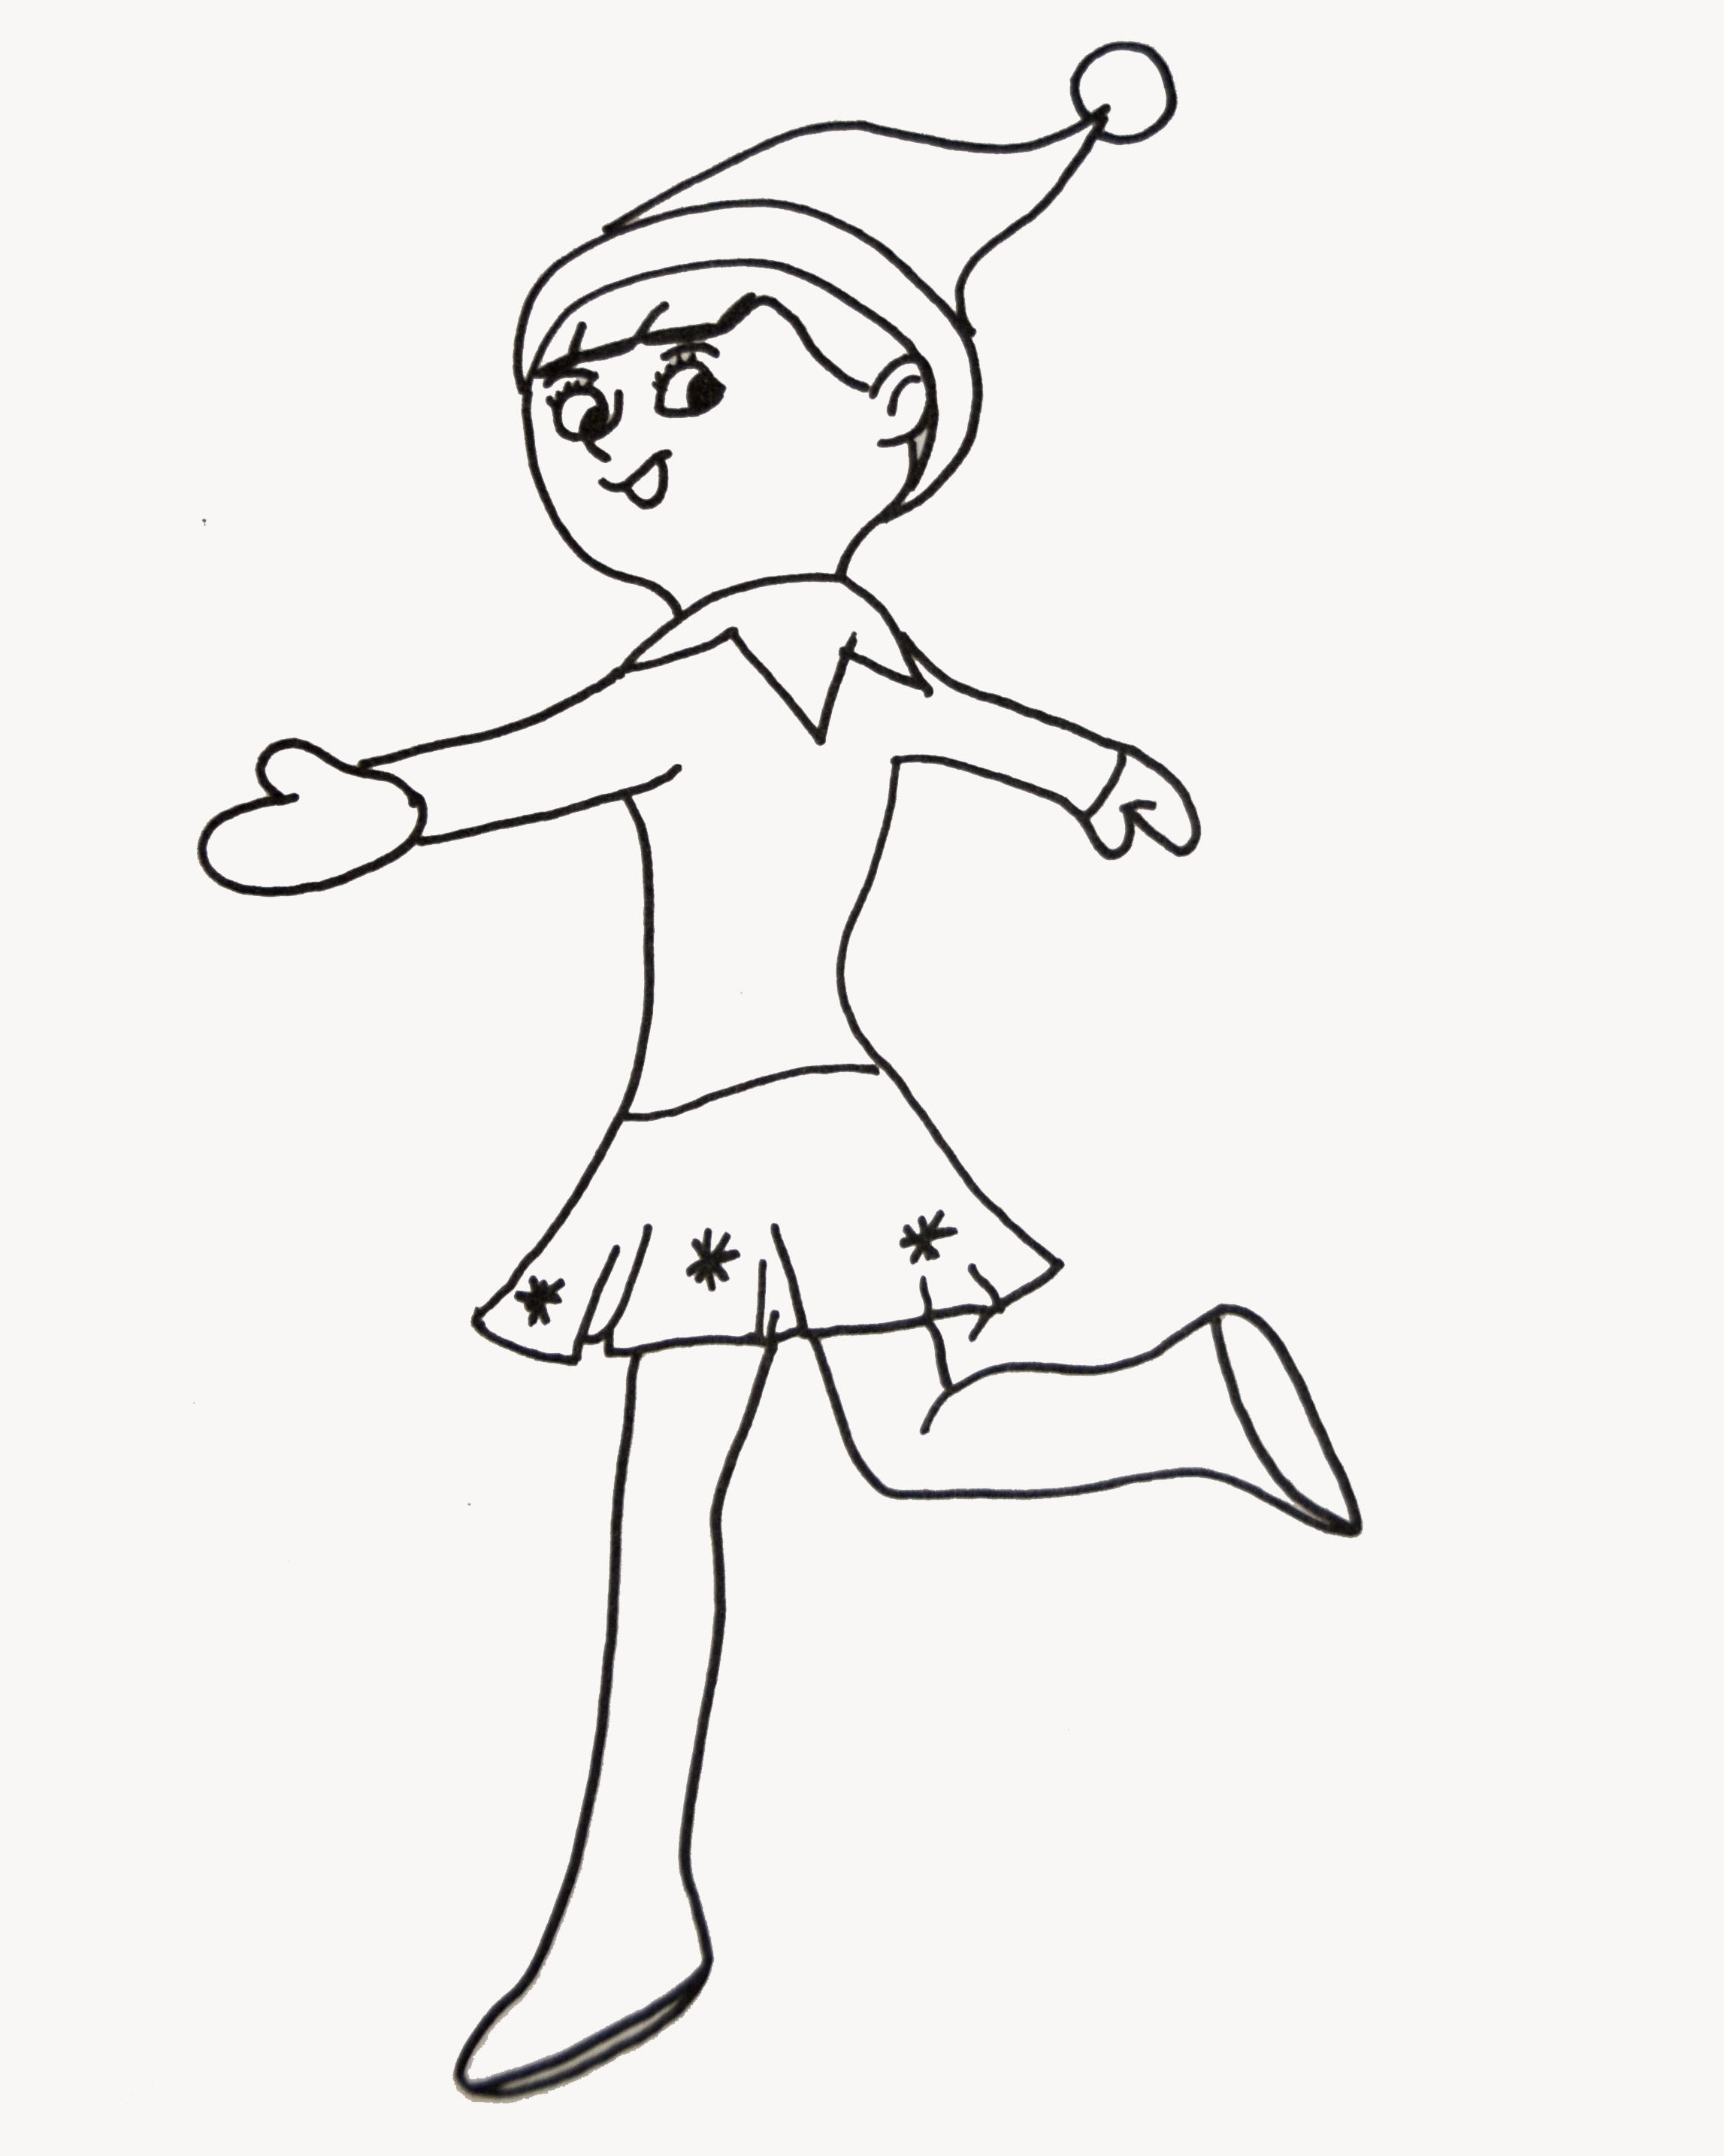 image regarding Elf on the Shelf Printable Coloring Pages referred to as Elf Upon The Shelf Coloring Web pages Elf Upon The Shelf Coloring